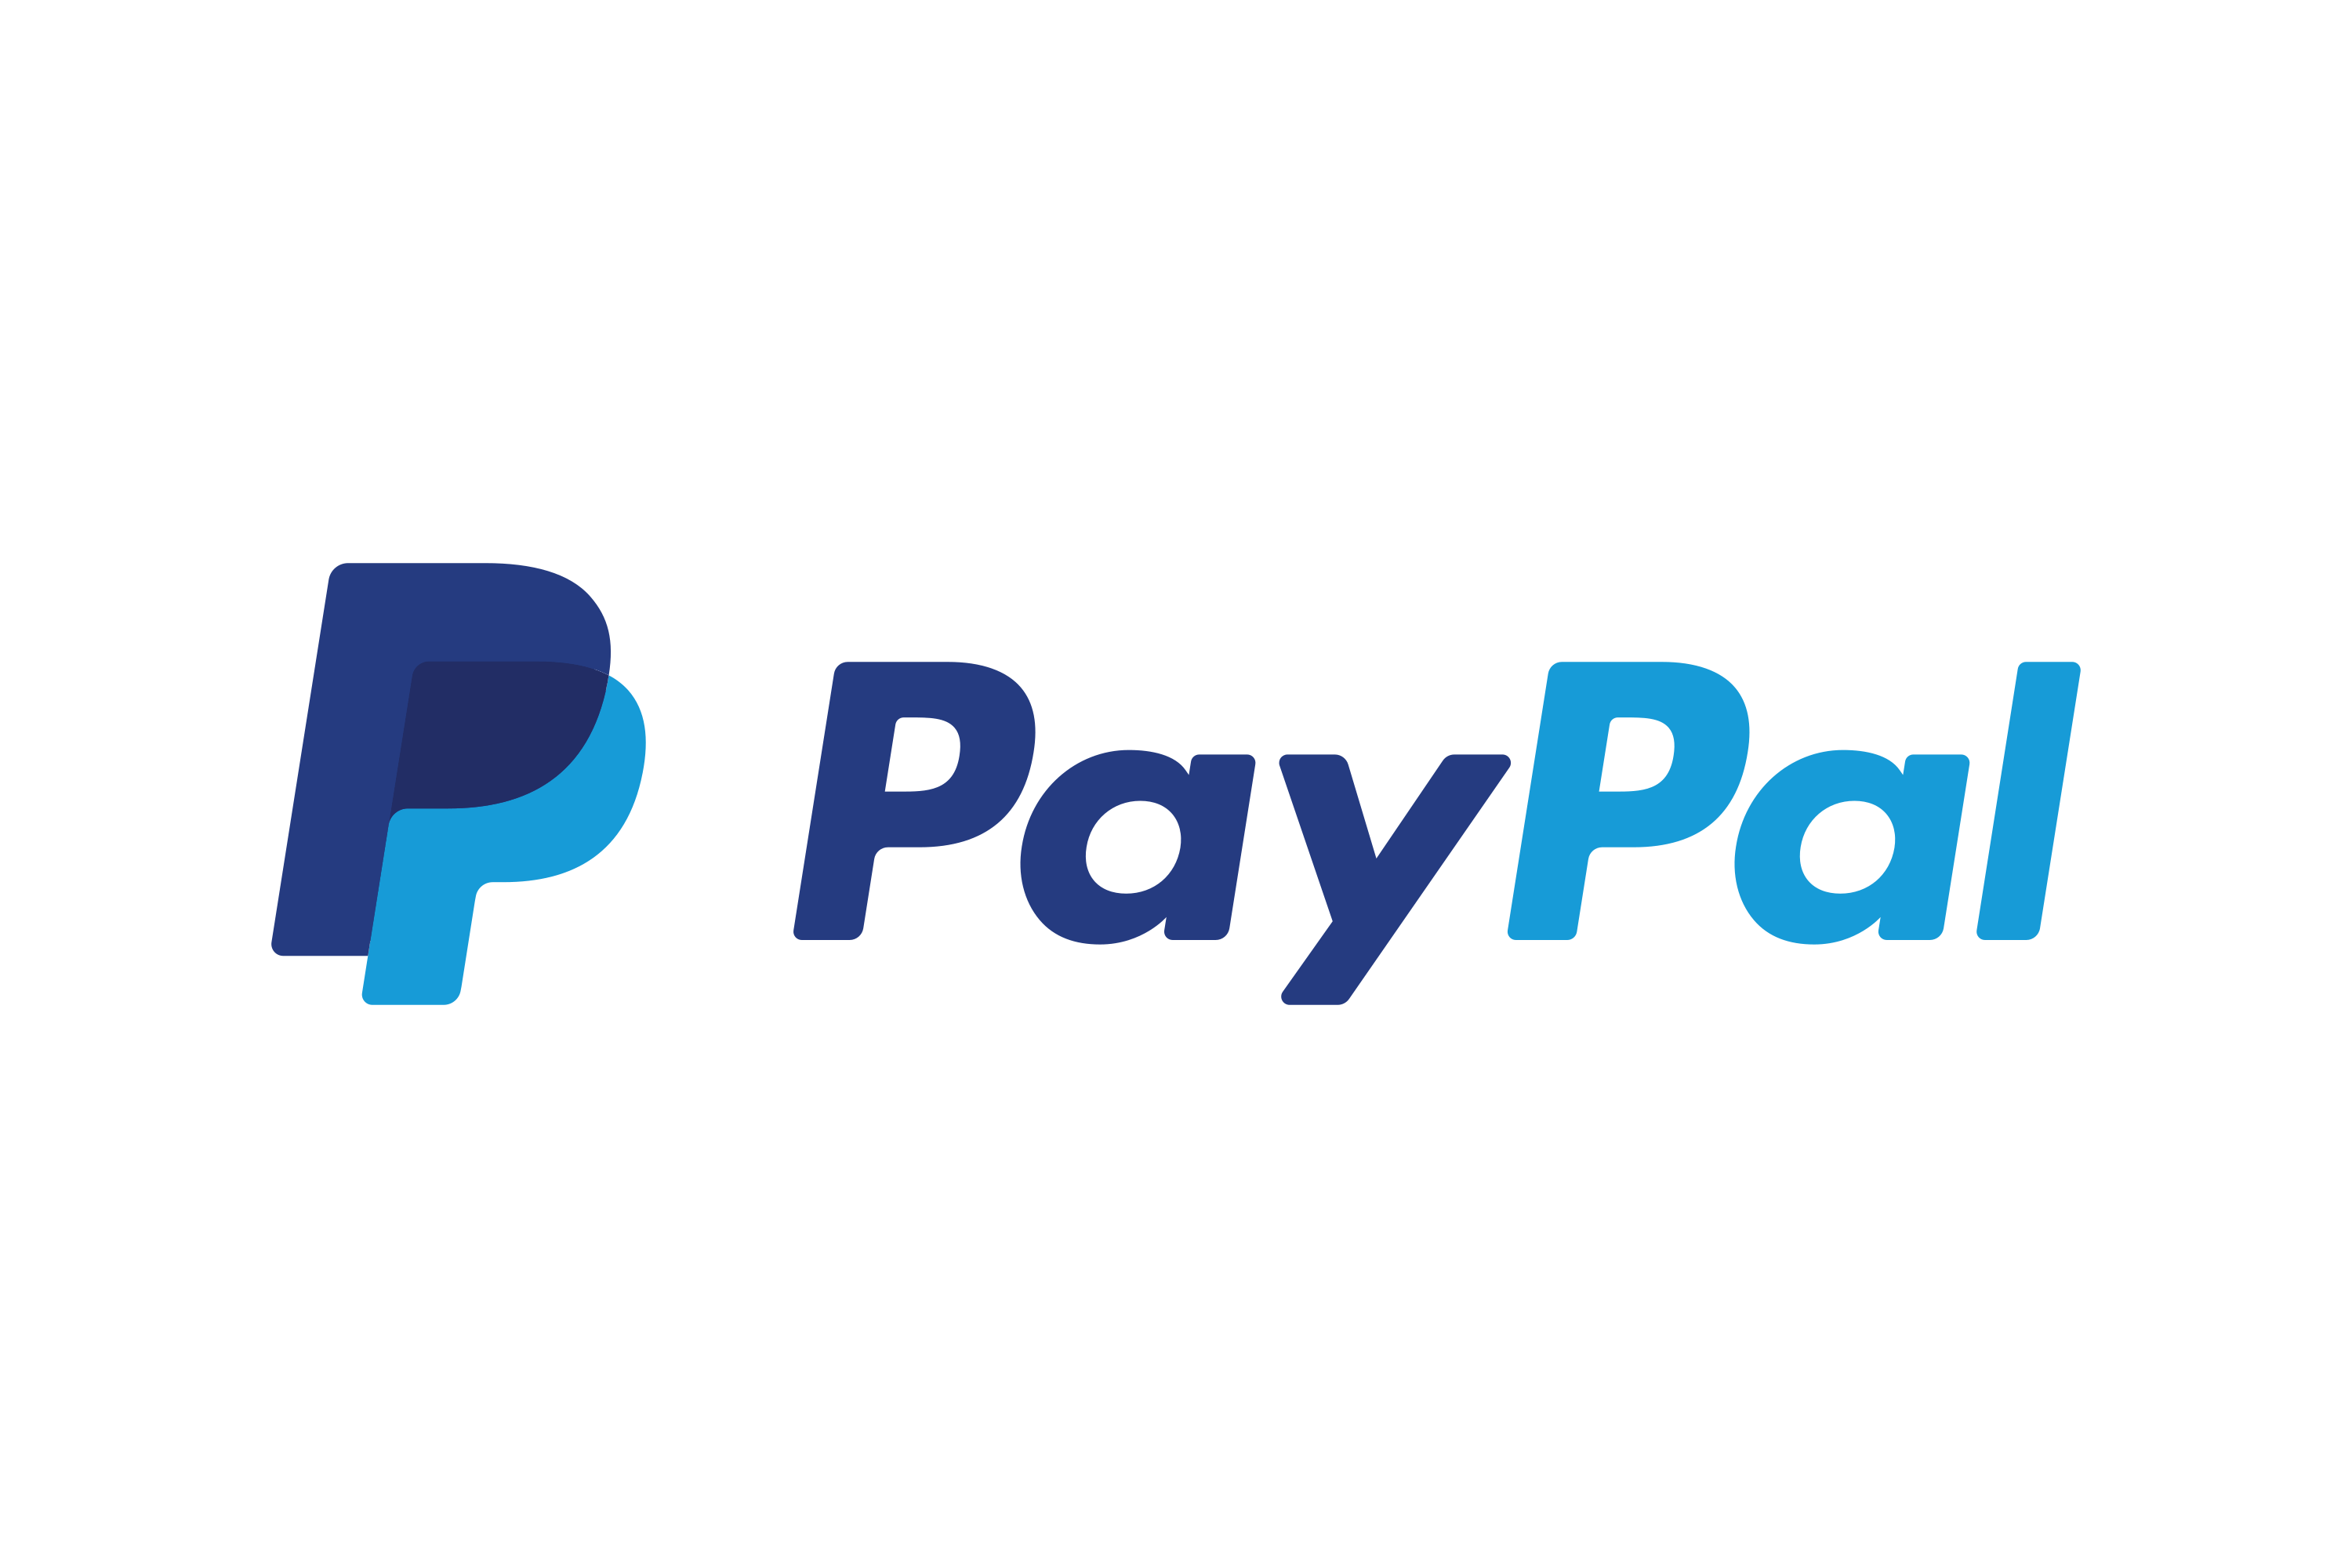 Paypal Campus Recruitment Challenge For 2021 Batch ...